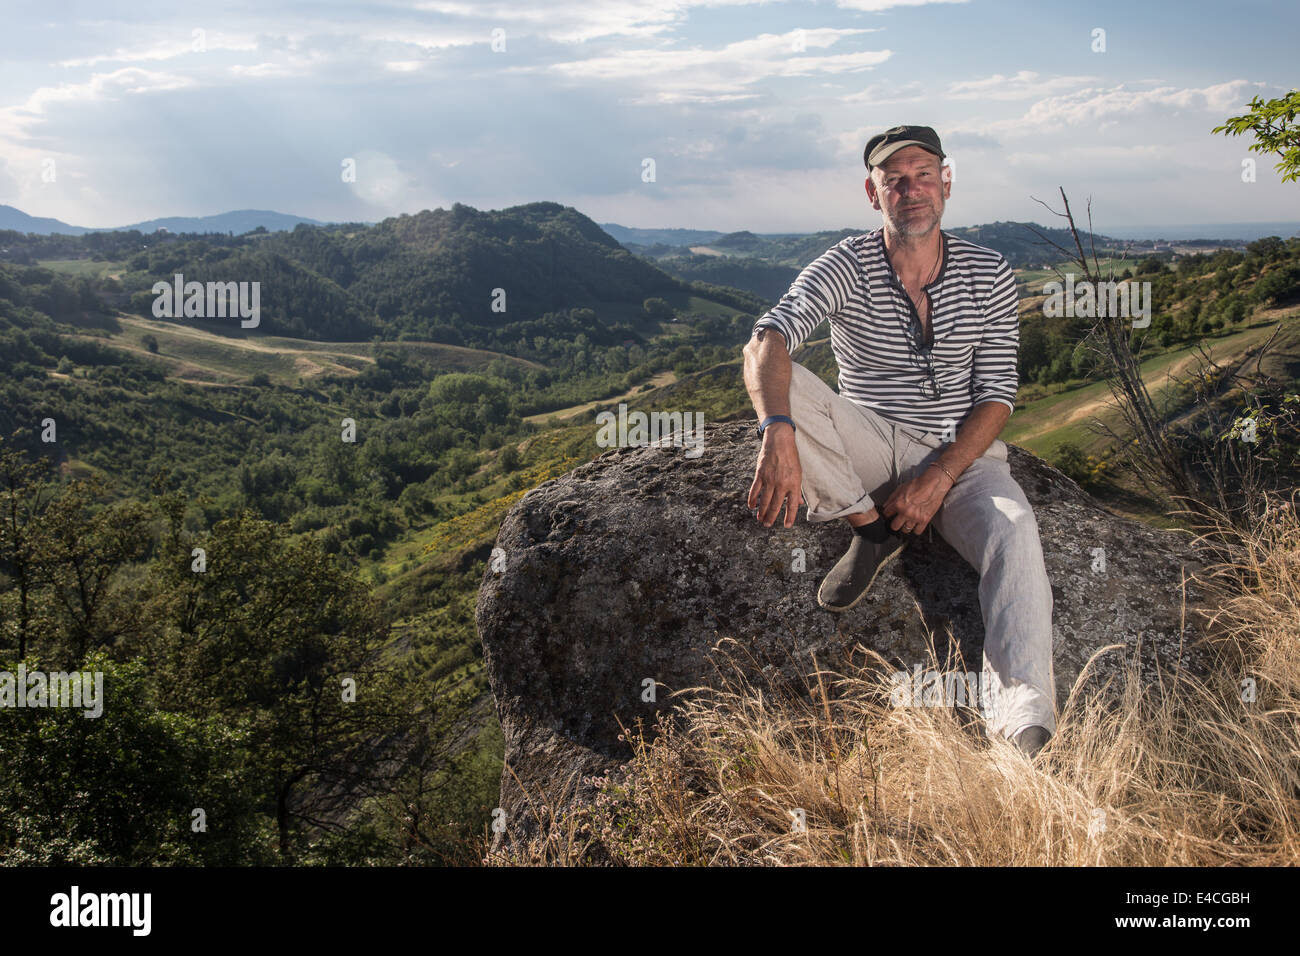 serious man sitting on rock wearing stripy top and cap in countryside looking directly at camera - Stock Image